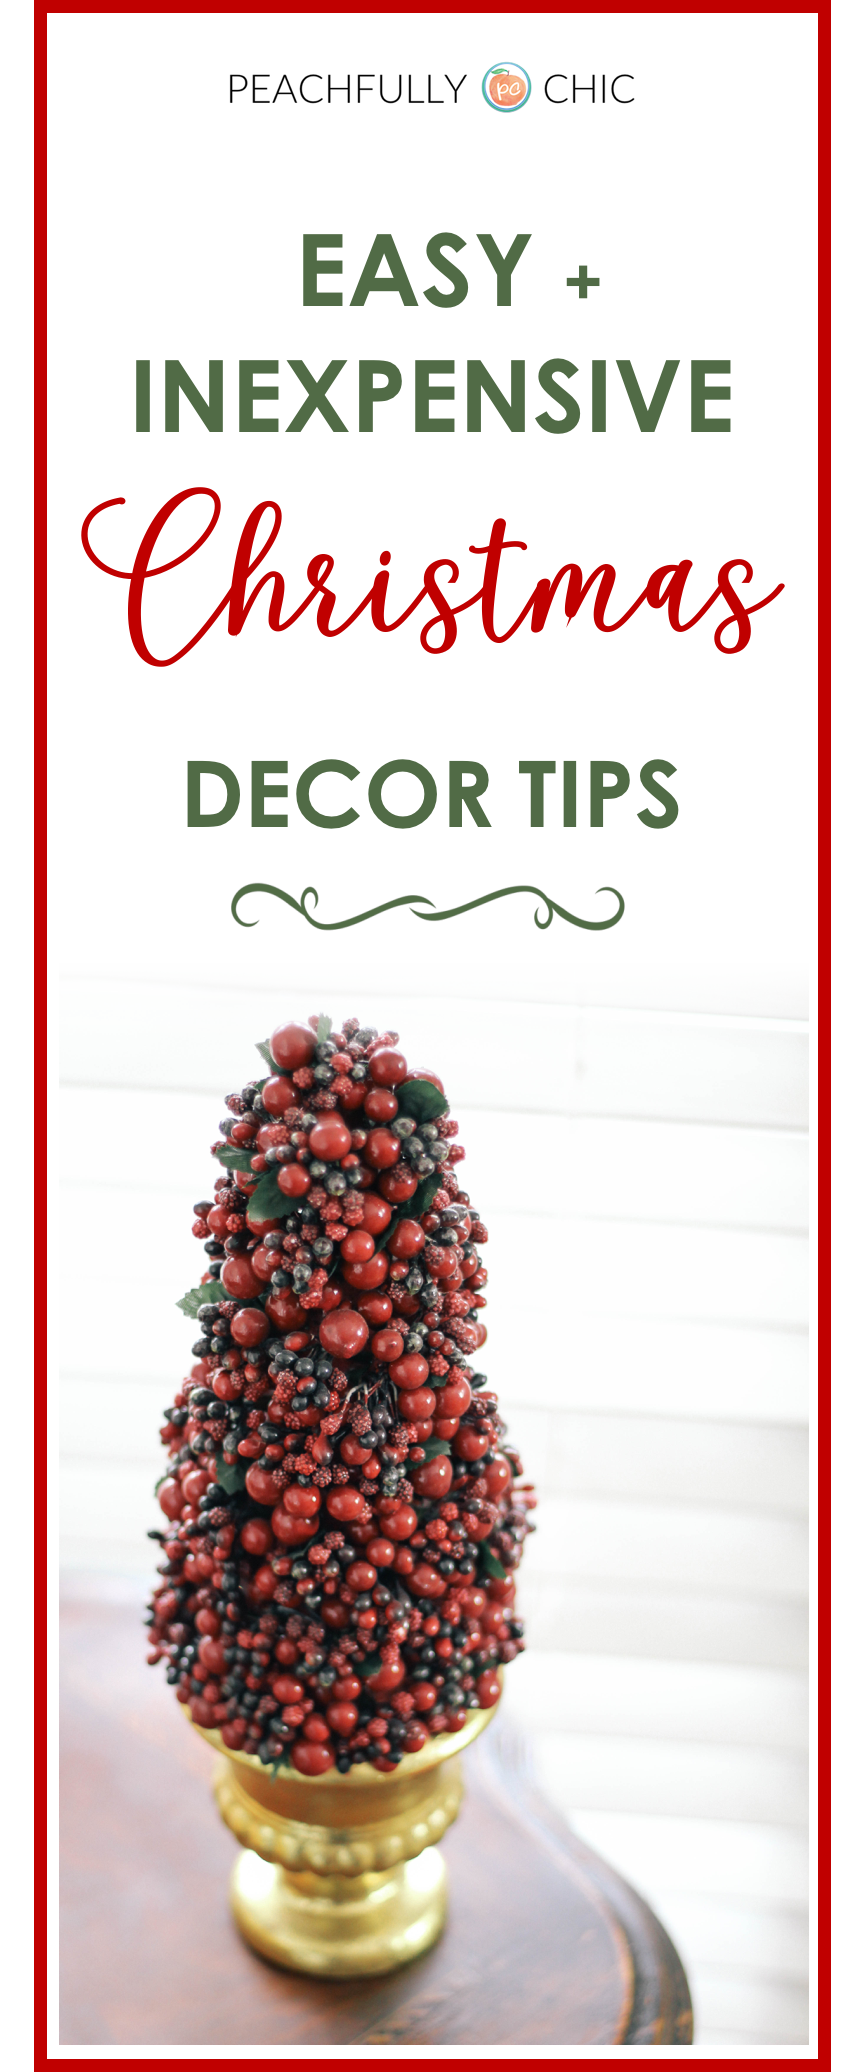 Easy-Inexpensive-Cheap-Christmas-Decor-Tips-for-the-Holidays